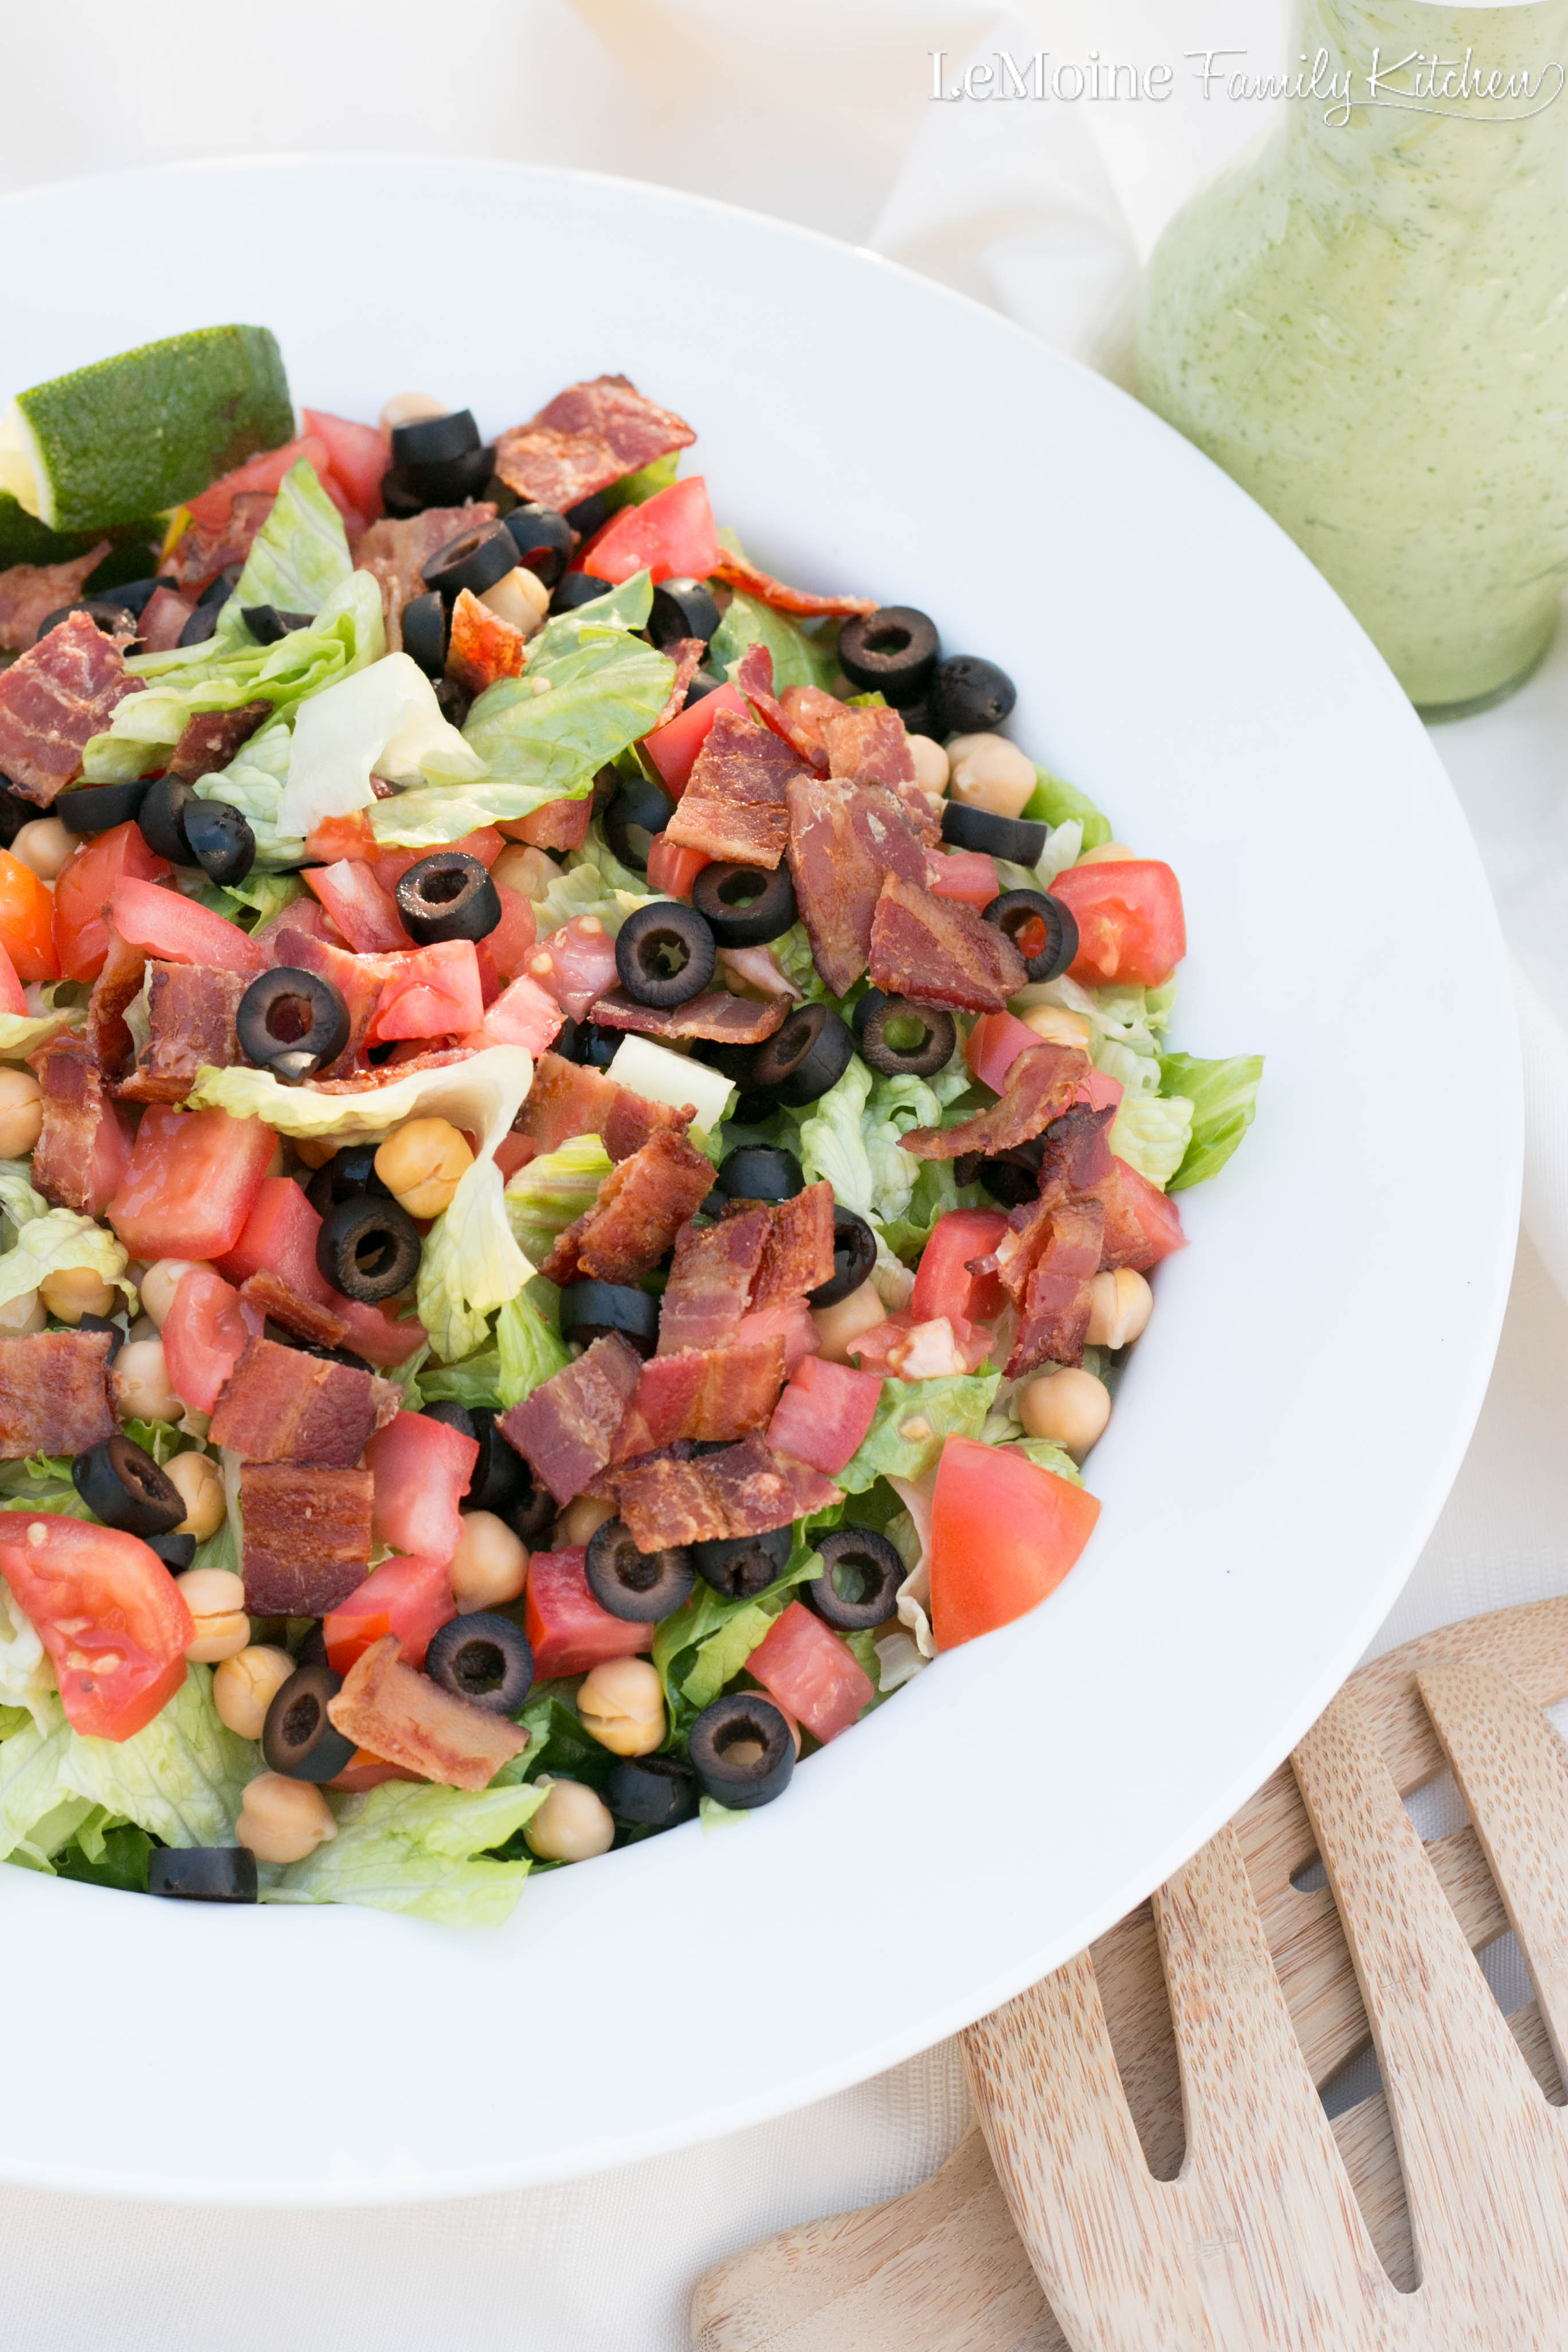 BLT Chopped Salad with Avocado Dressing . Everything you love about a BLT in a salad with an incredible avocado dressing. Full of great flavor and makes for a perfect weeknight meal or lunch! This is a GREAT salad!